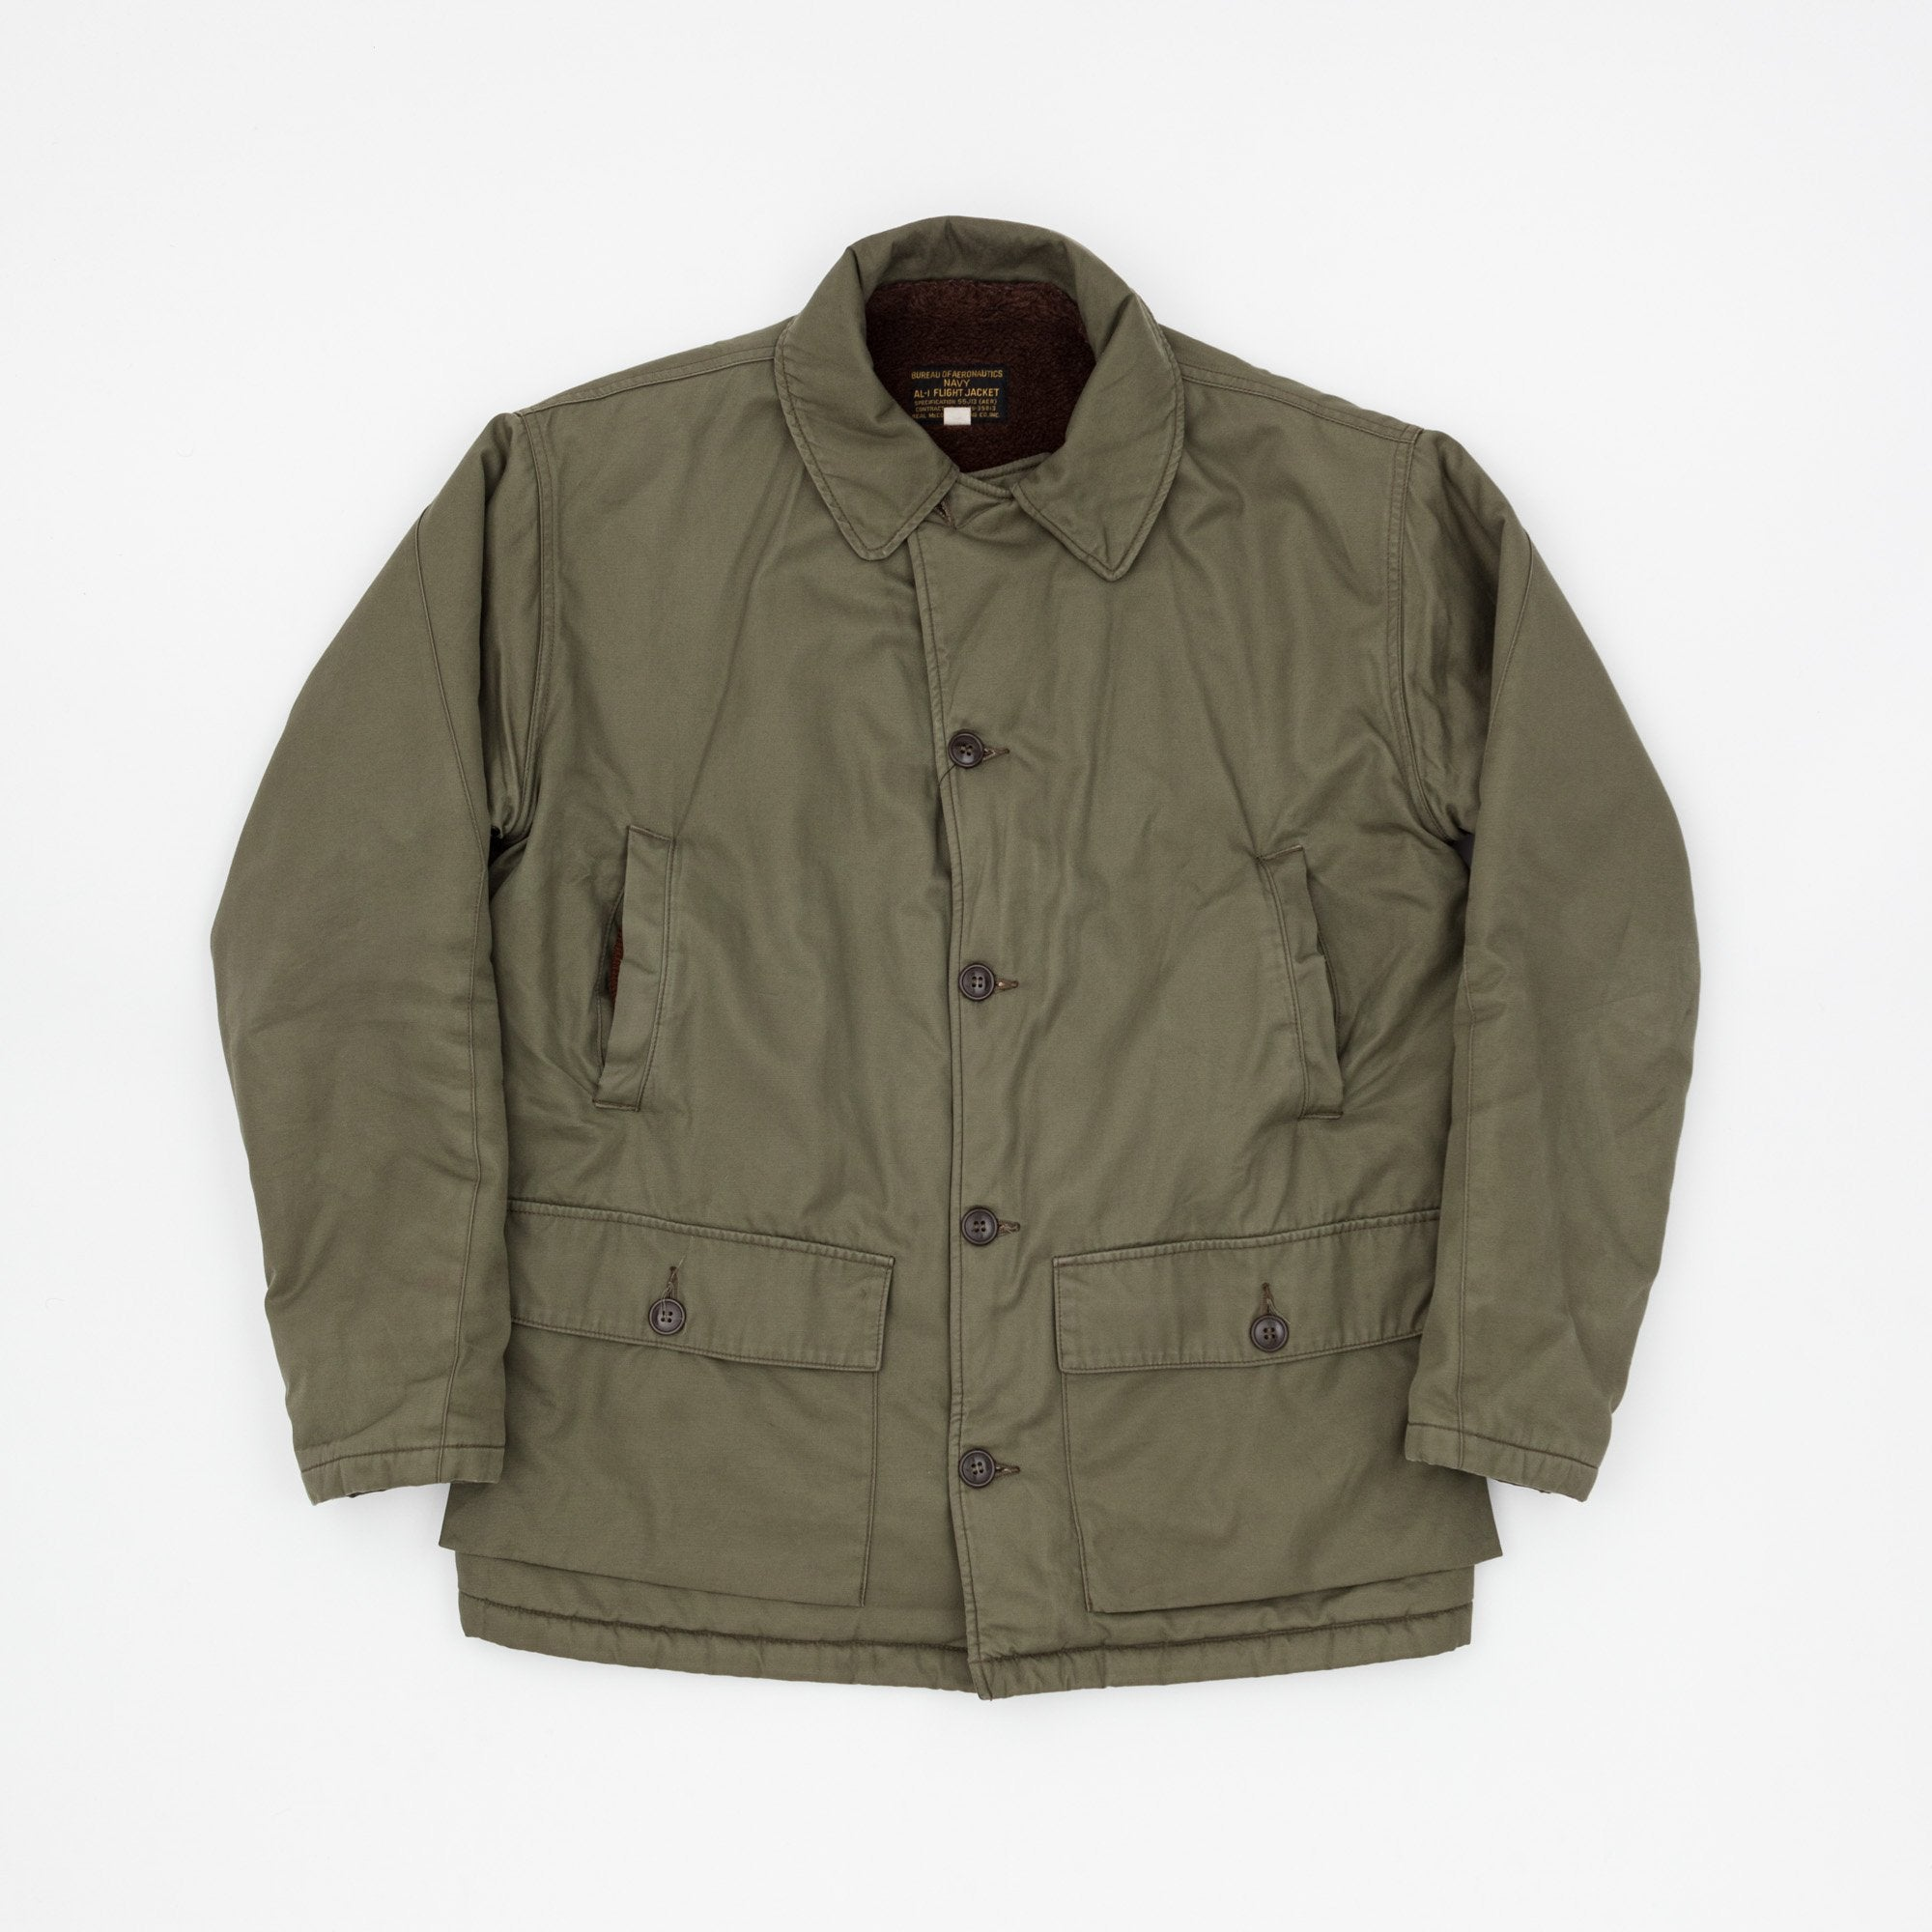 The Real McCoy's AL-1 55J13 Flight Jacket